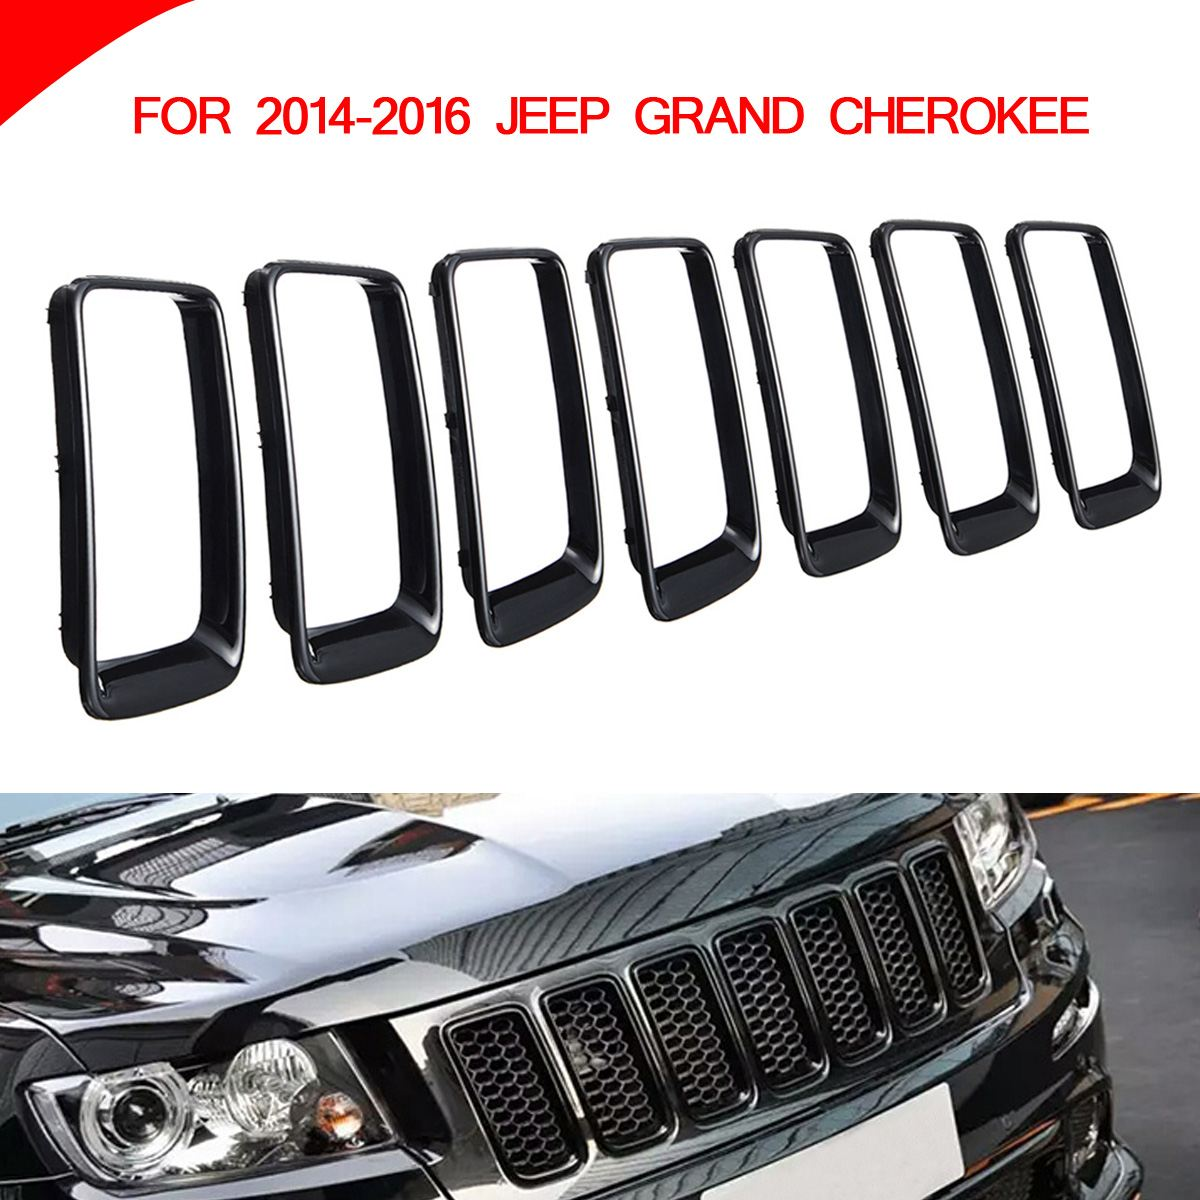 a click the grand n for on item jeep oem amp view powerstep play image see research zoomed pnp cherokee w plug s itm of illumination below to